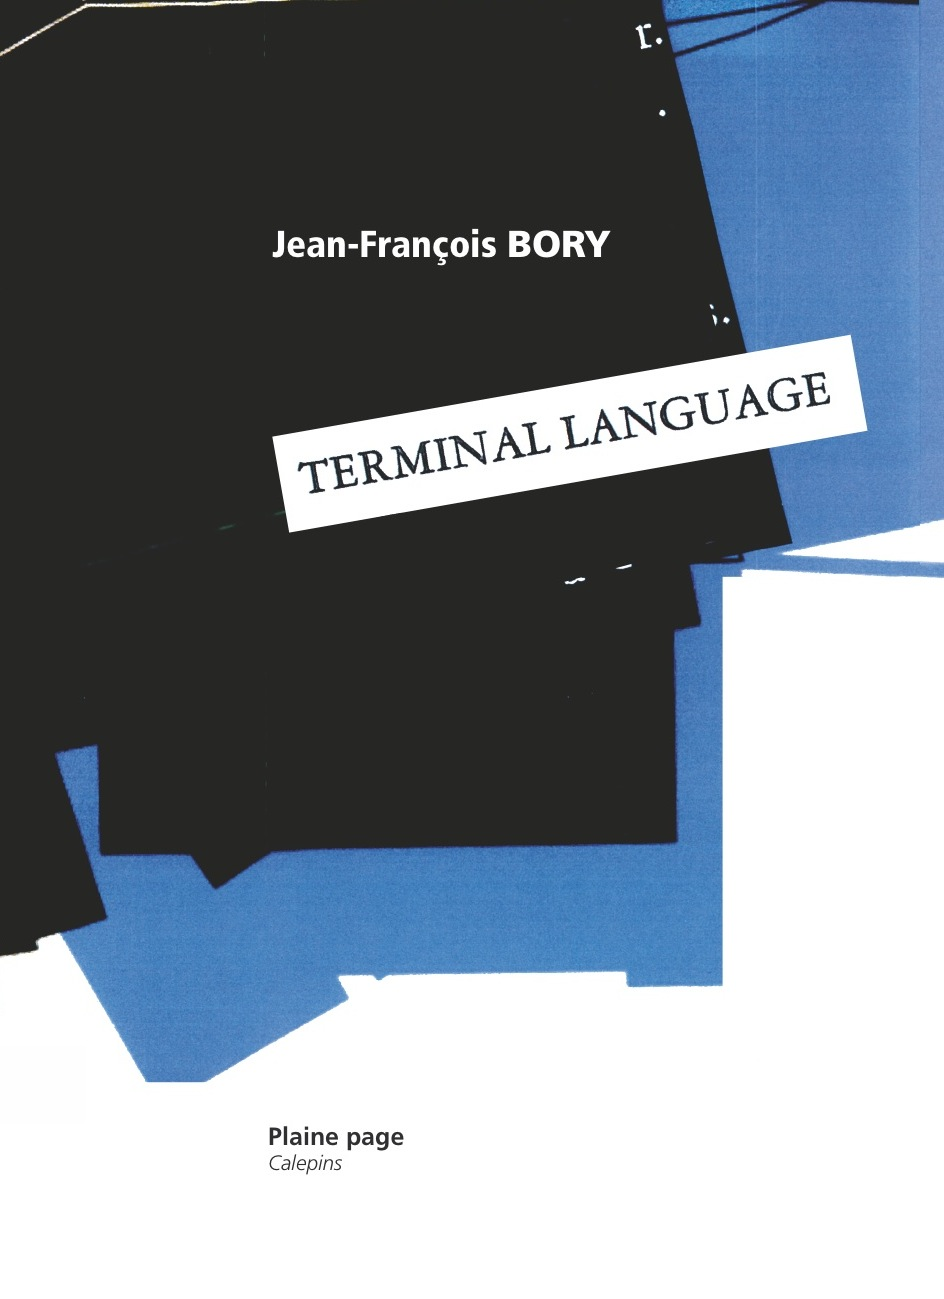 Jean-François Bory, Terminal language, Éditions Plaine Page (Collection Calepins), 16 pages, 5 euros.